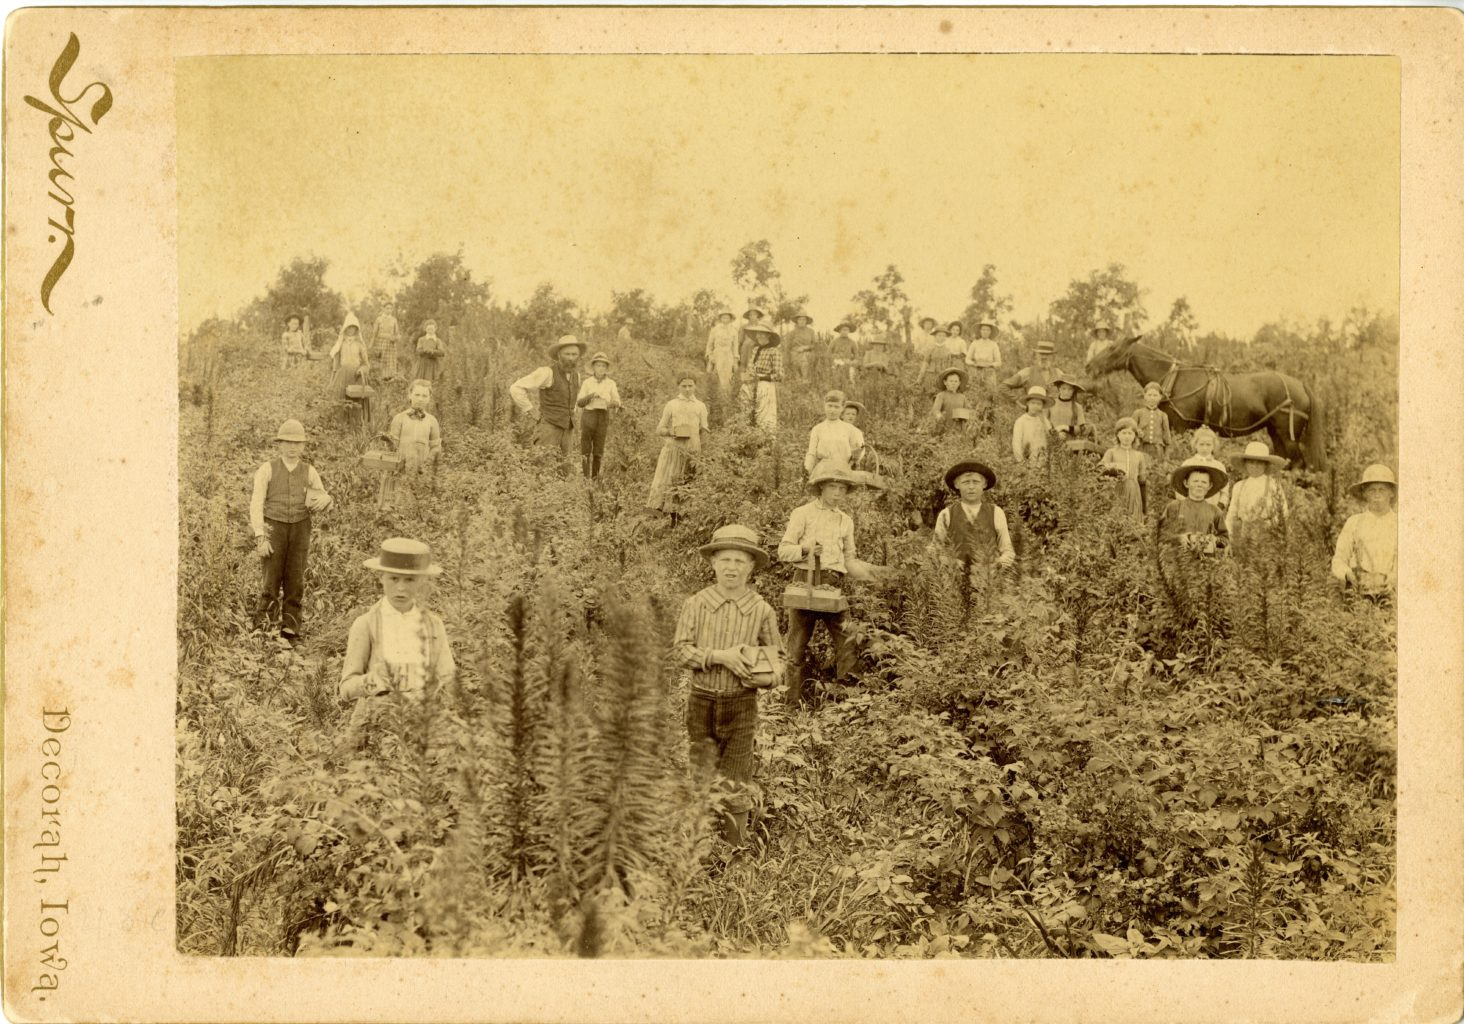 Large group in field picking berries.